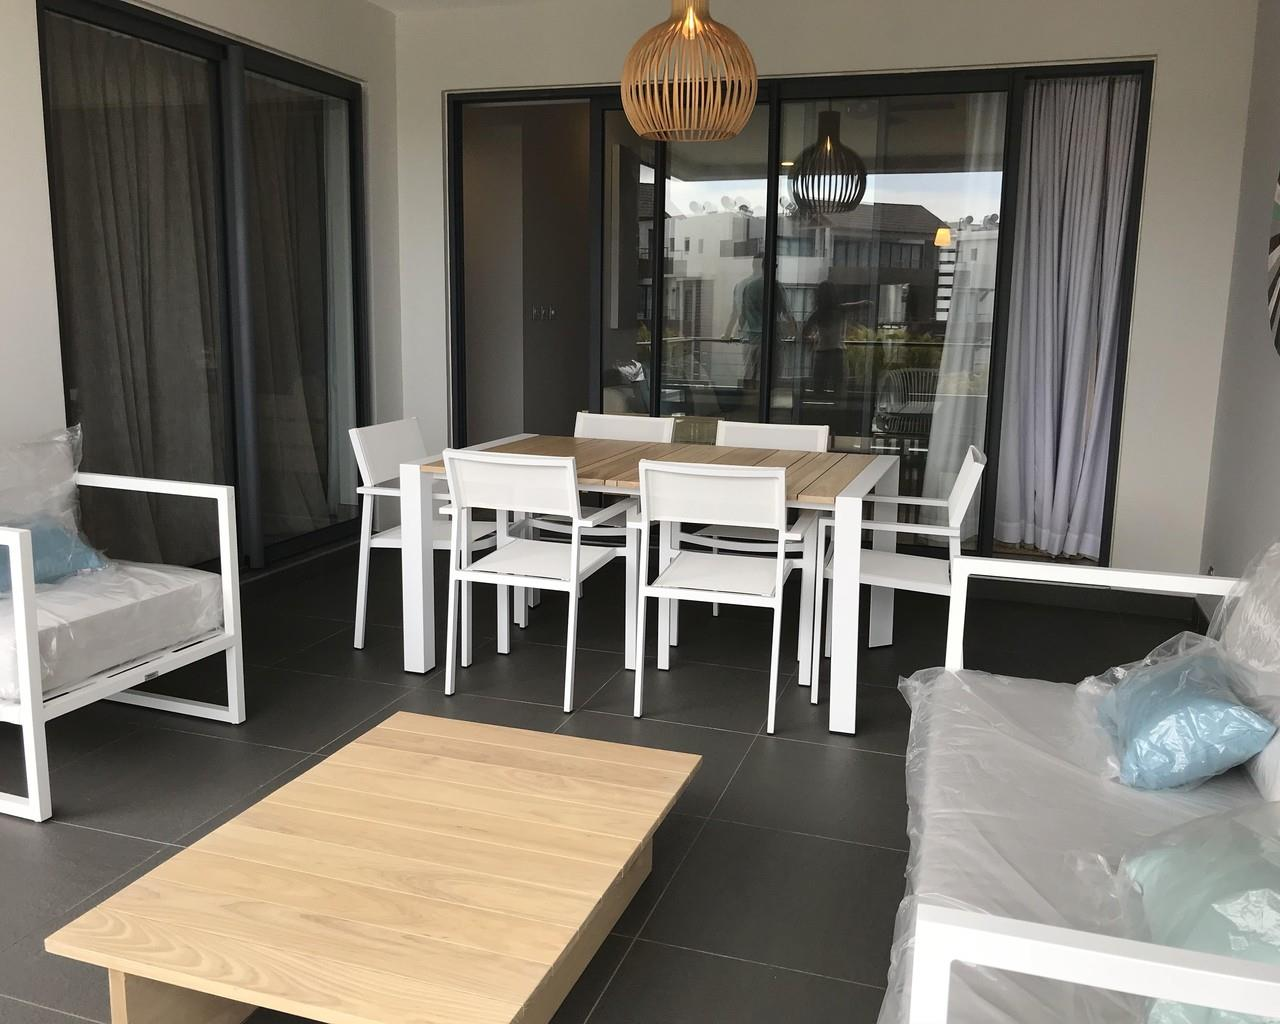 2 Bedroom Apartment / Flat For Sale in Grand Baie